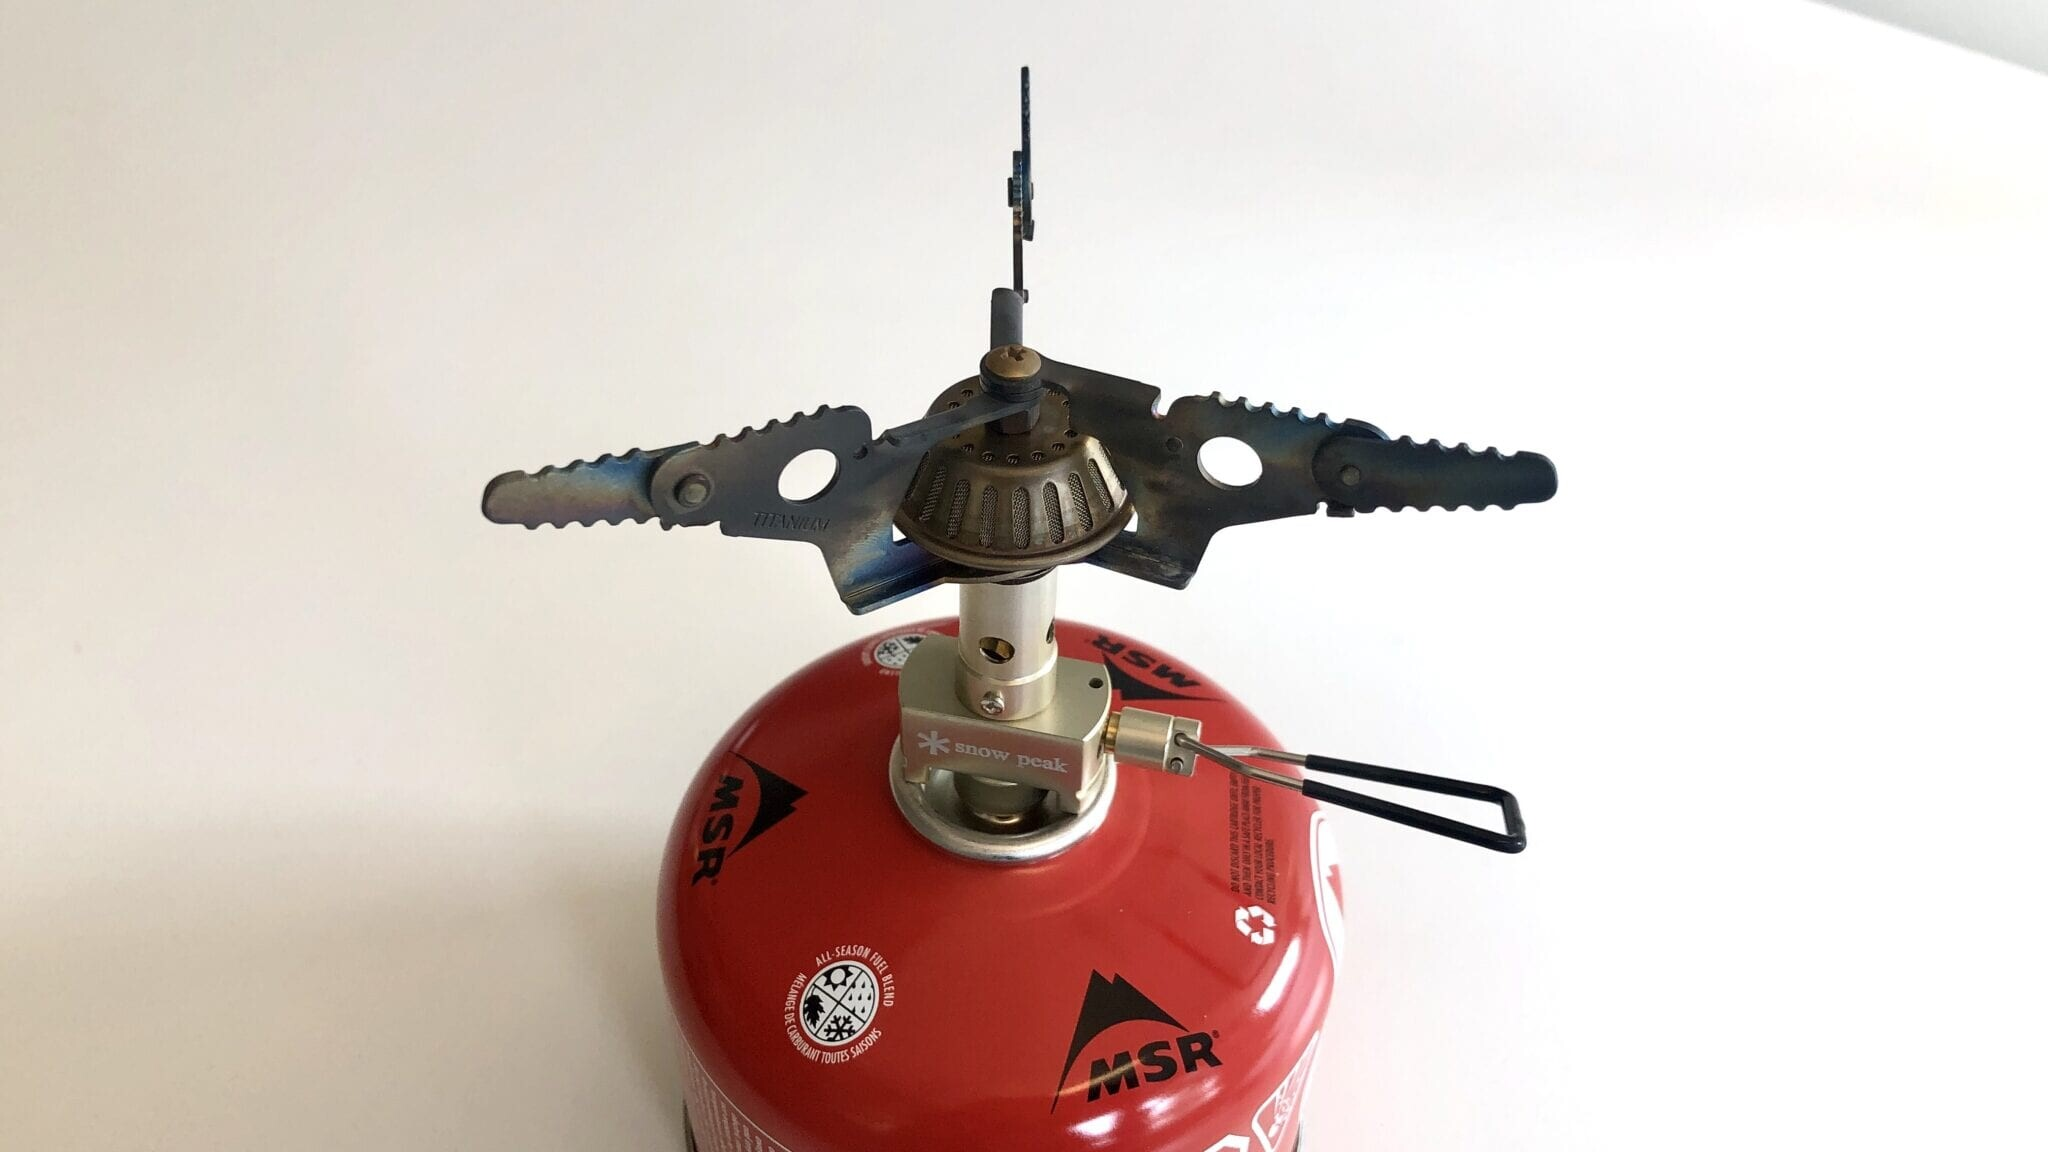 The Snow Peak LiteMax stove attached to a fuel canister.